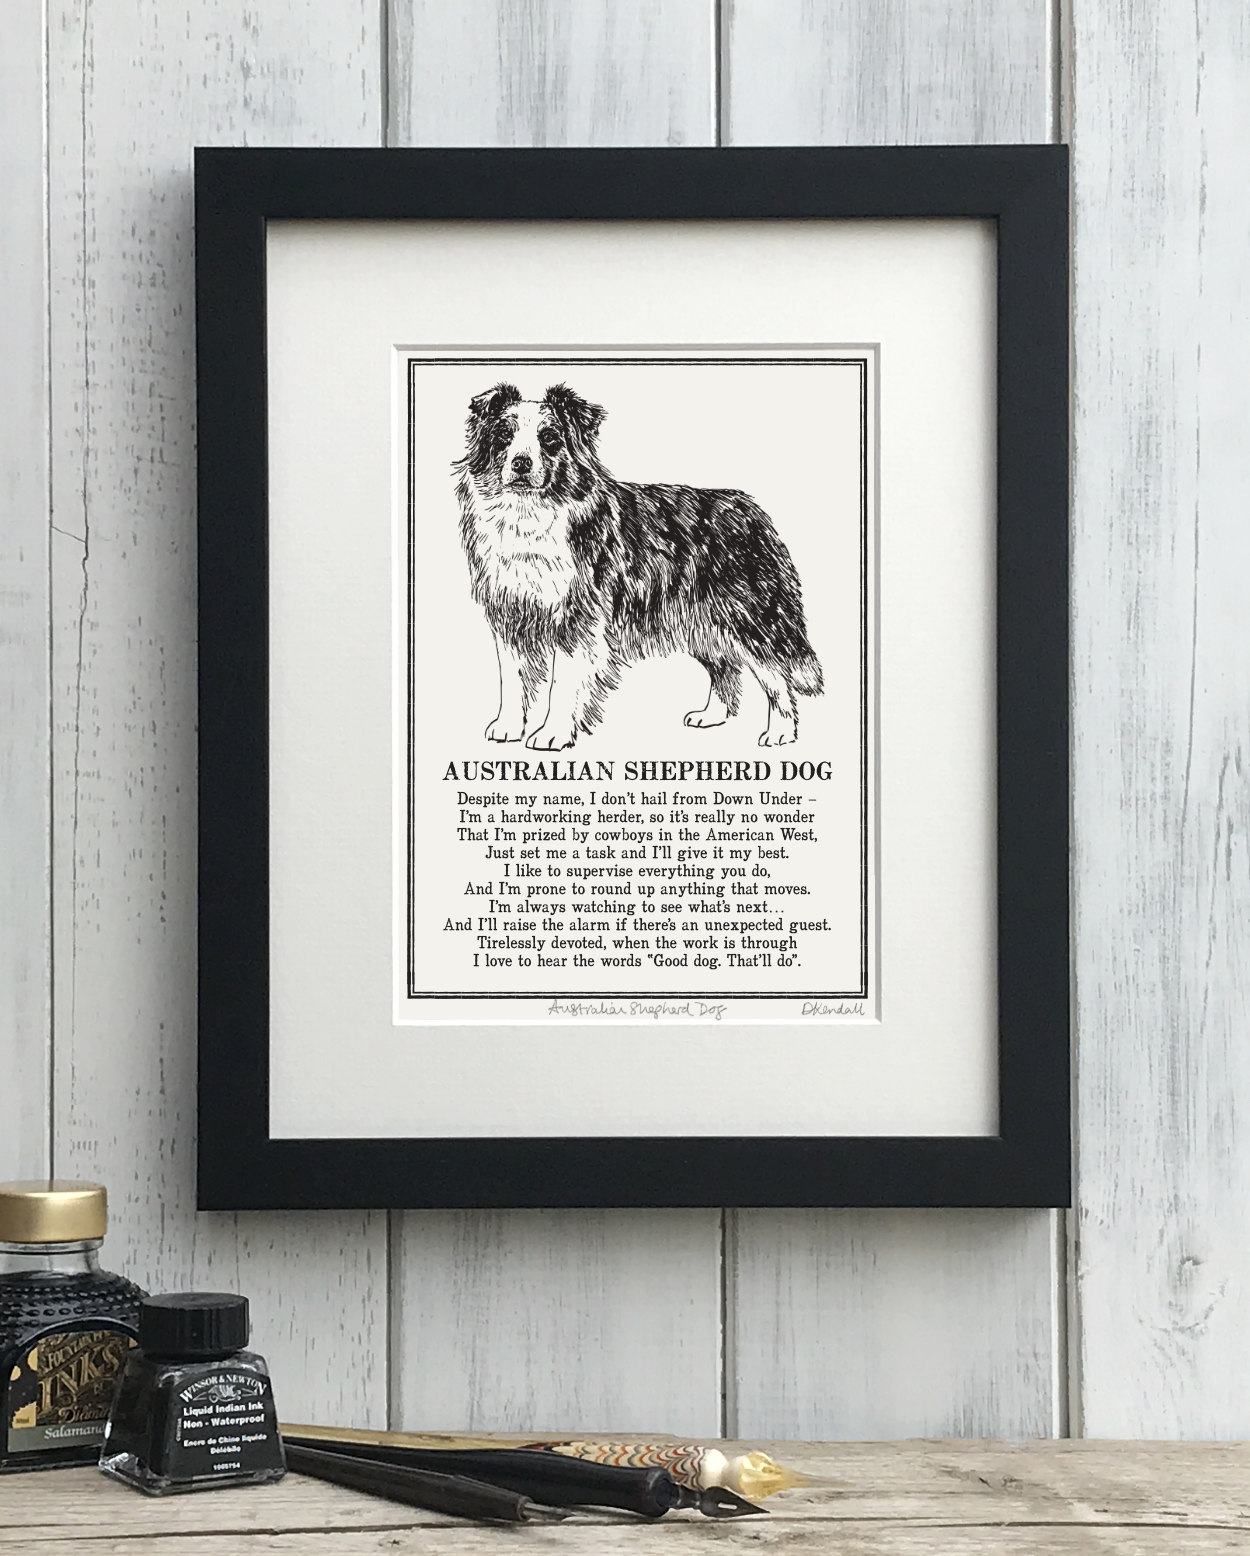 Australian Shepherd Dog Doggerel Illustrated Poem Art Print | The Enlightened Hound